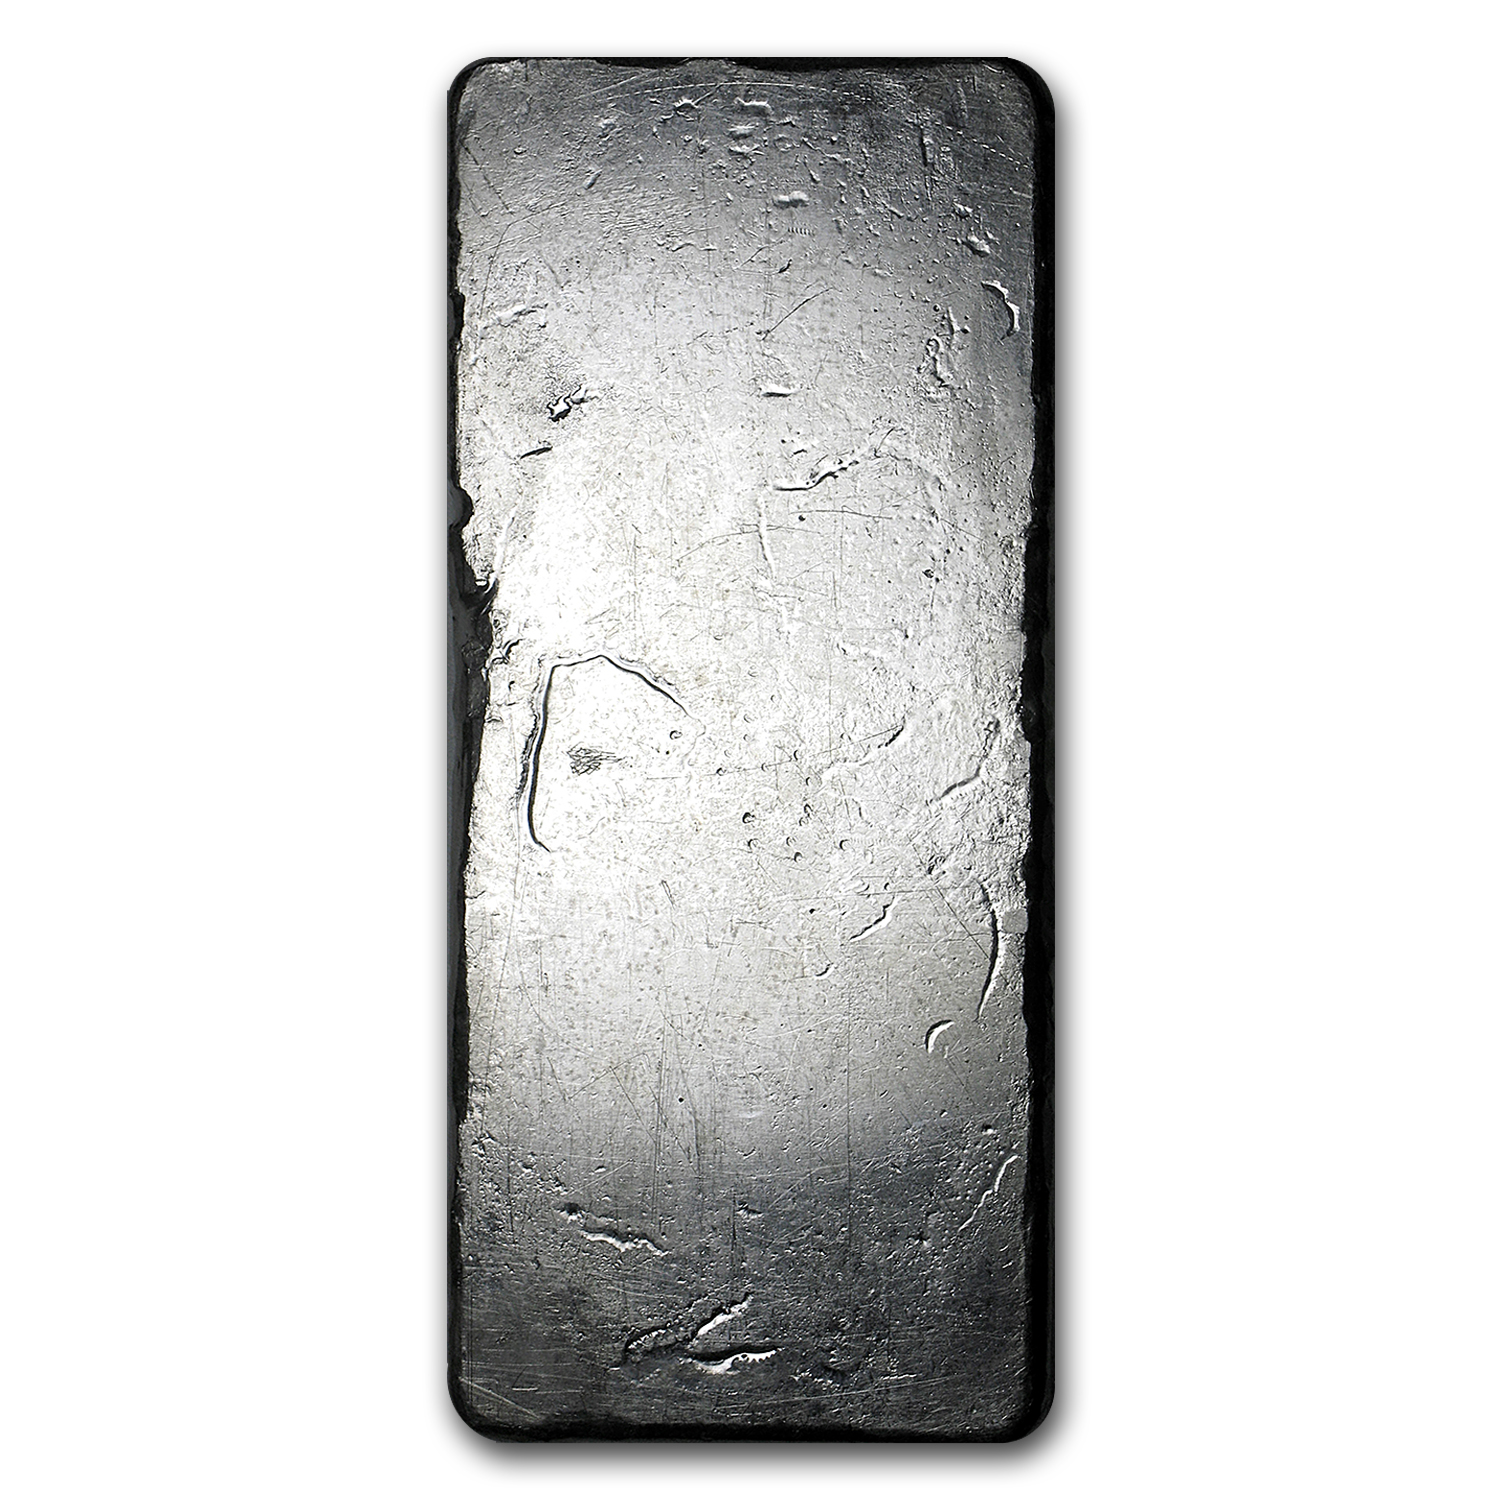 1 Kilo Silver Bars - Swiss Bank Corp.